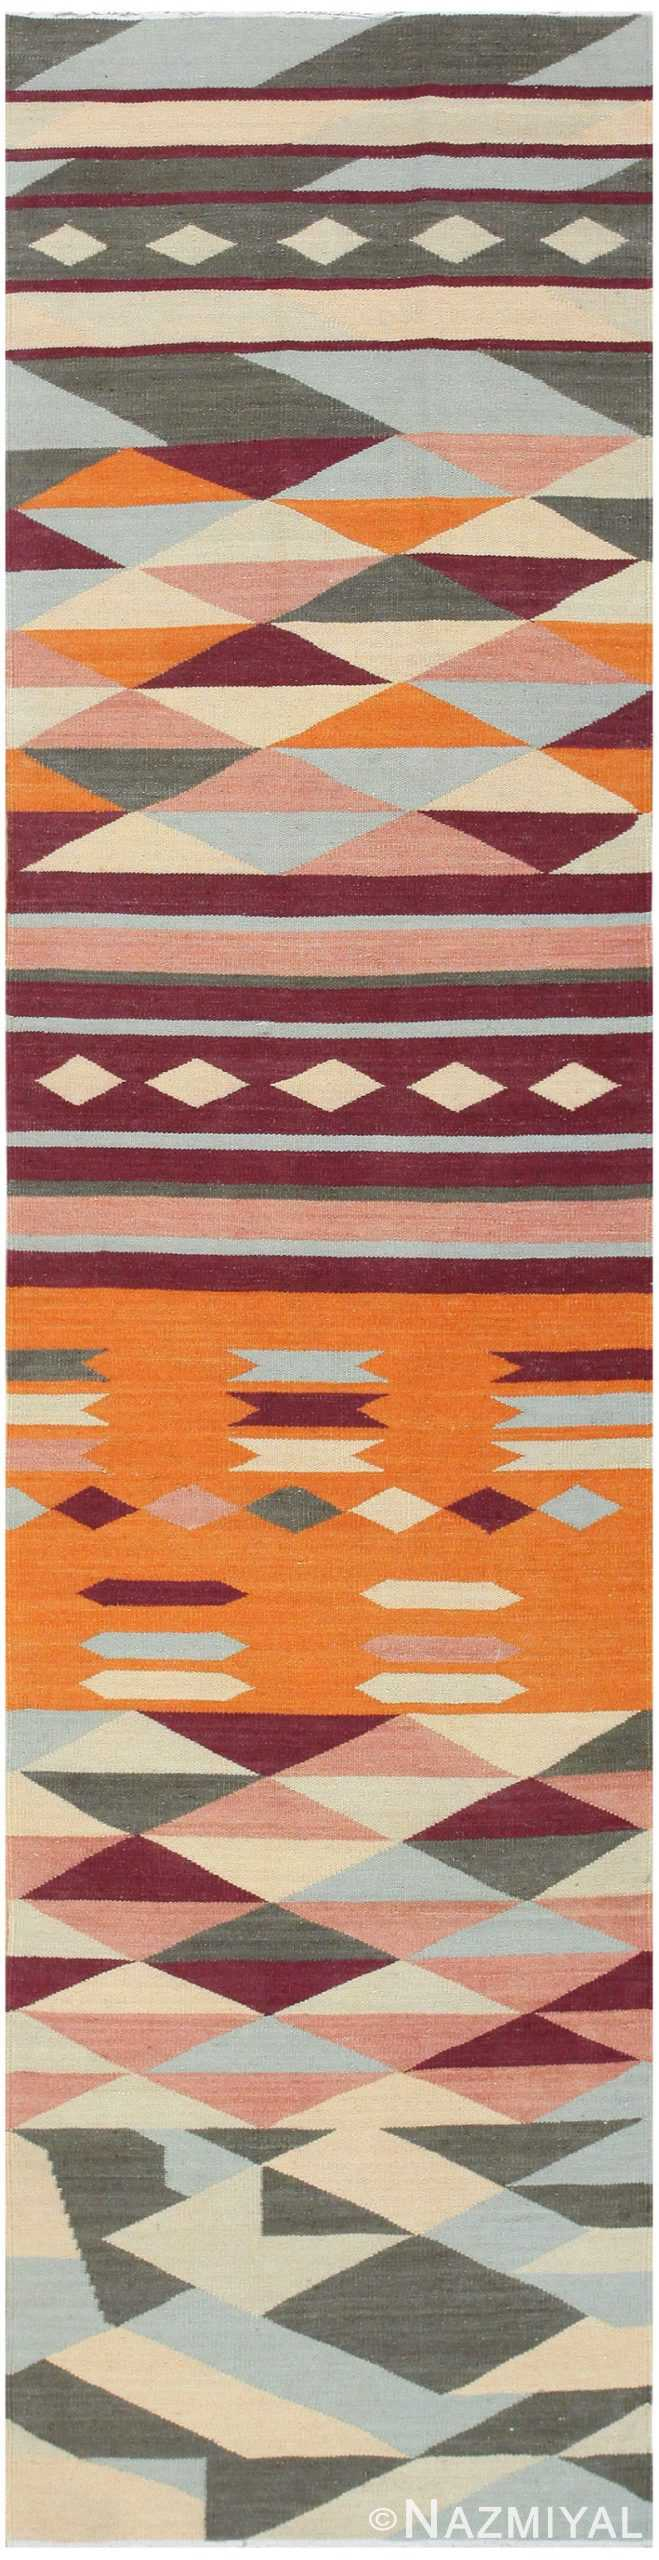 Swedish Inspired Kilim Runner 48476 Detail/Large View